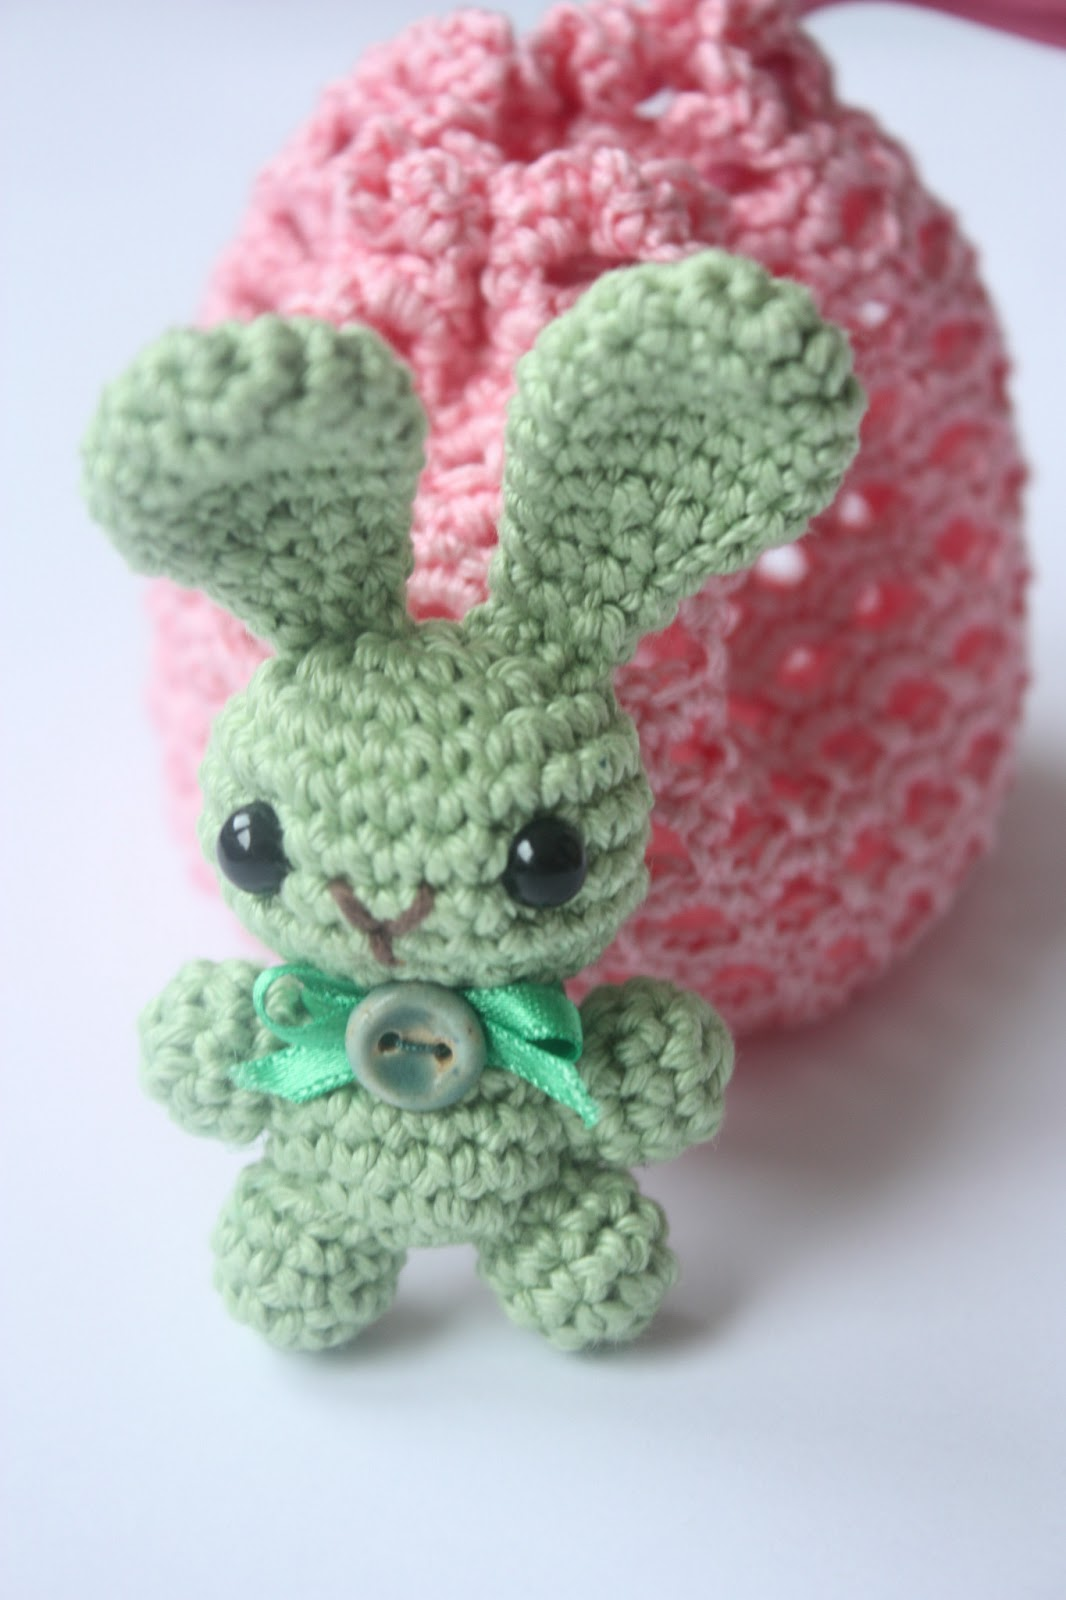 Free Crochet Pattern For A Rabbit : Happyamigurumi: Working on Bunny Brooch Pattern